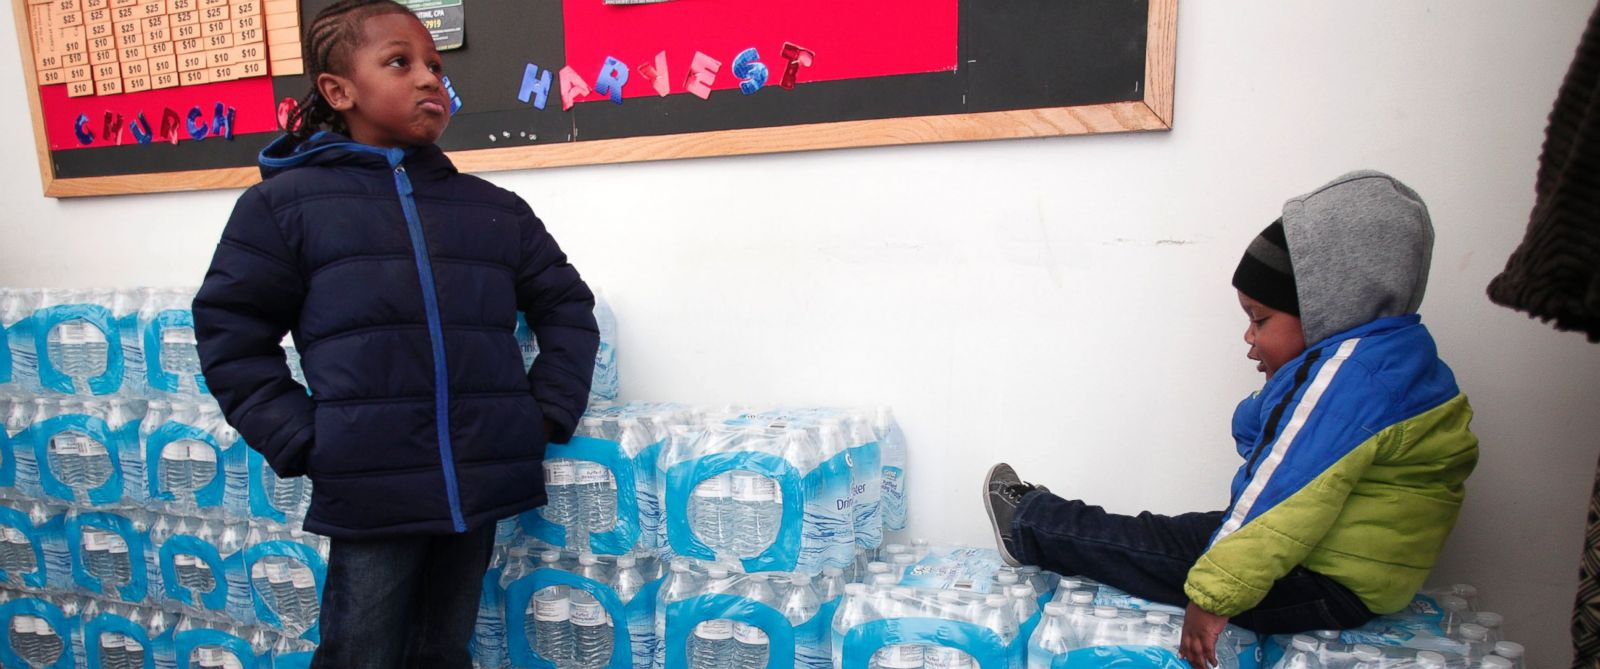 PHOTO: Justin Roberson (L), age 6, of Flint, Michigan and Mychal Adams, age 1, of Flint wait on a stack of bottled water at a rally where the Rev. Jesse Jackson was speaking about the water crisis on Jan. 17, 2016 in Flint, Michigan.